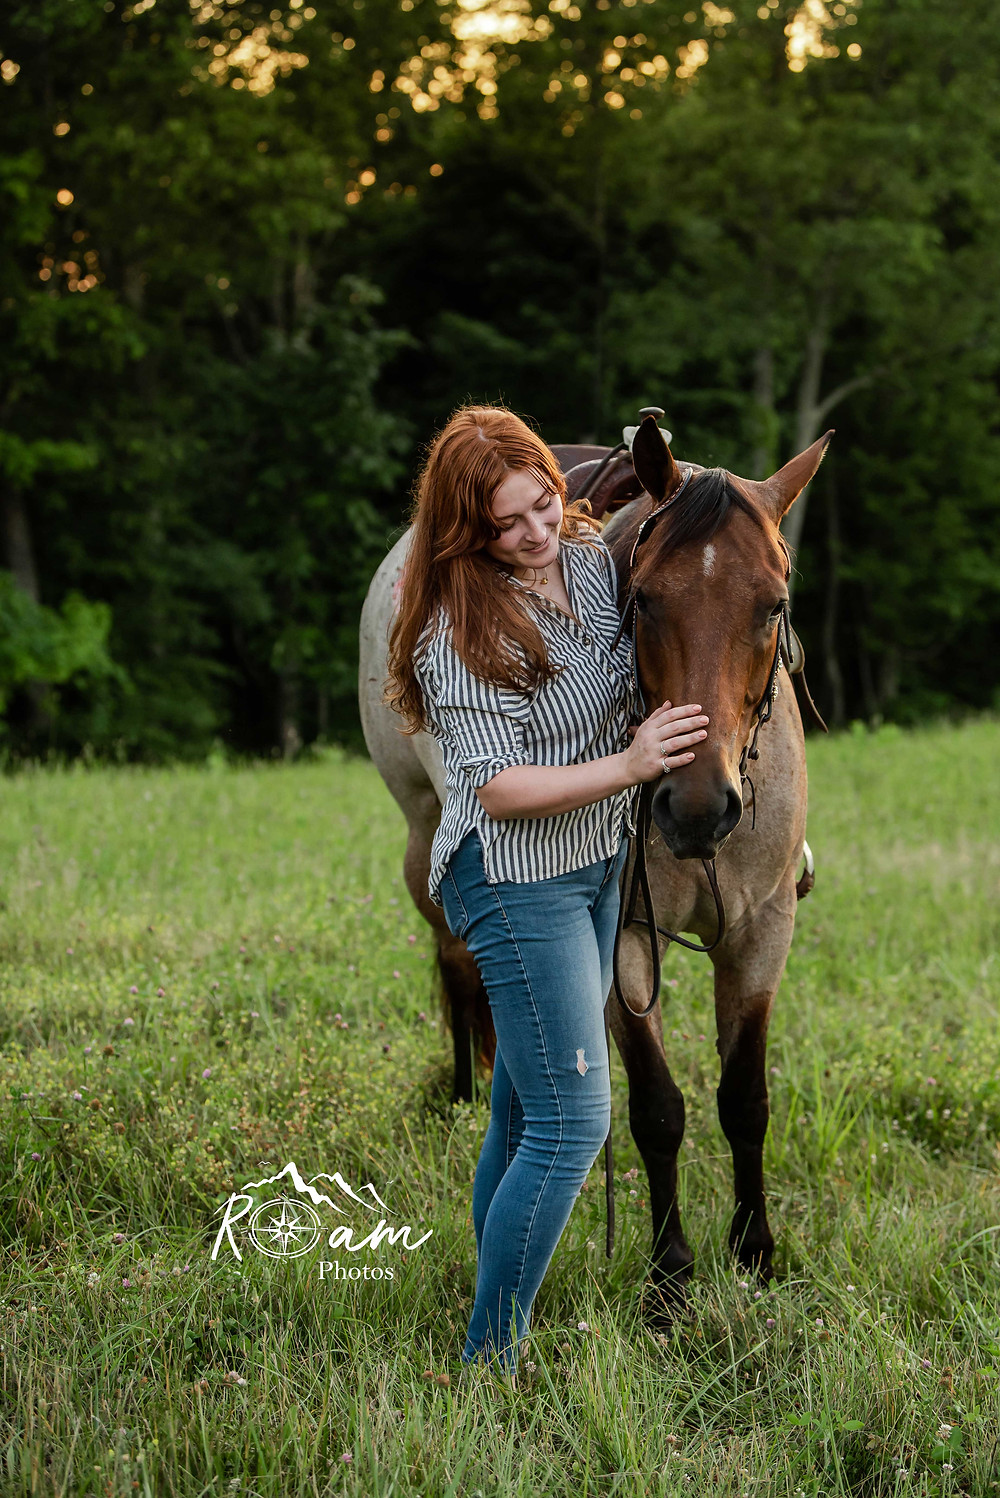 Pretty red headed girl with her horse.